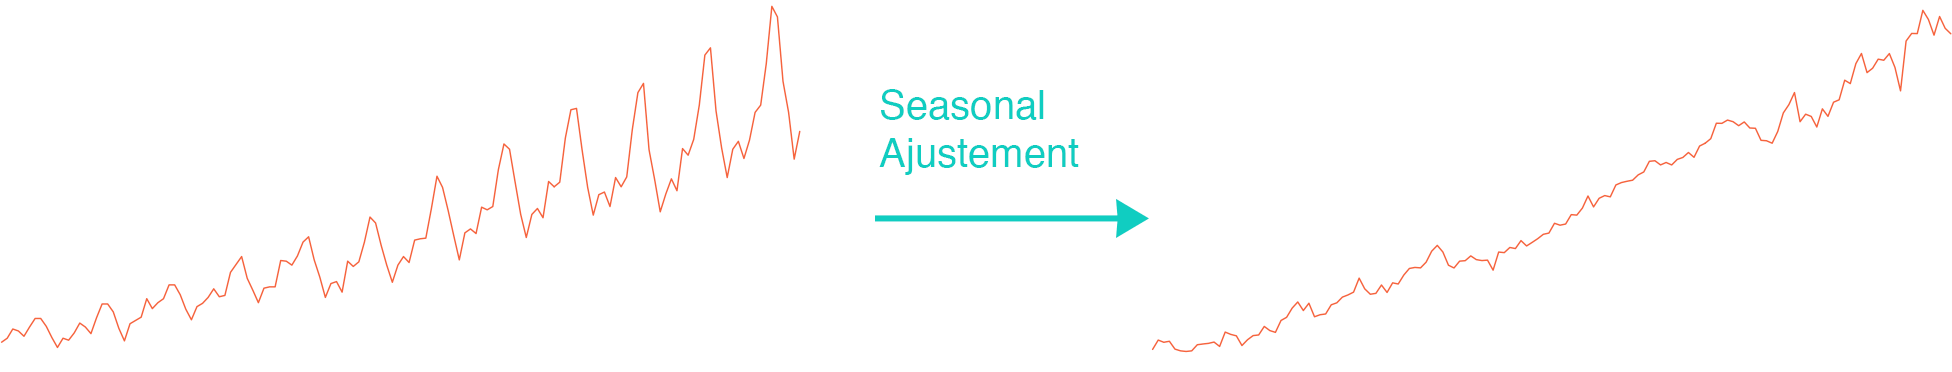 seasonal-adjustment